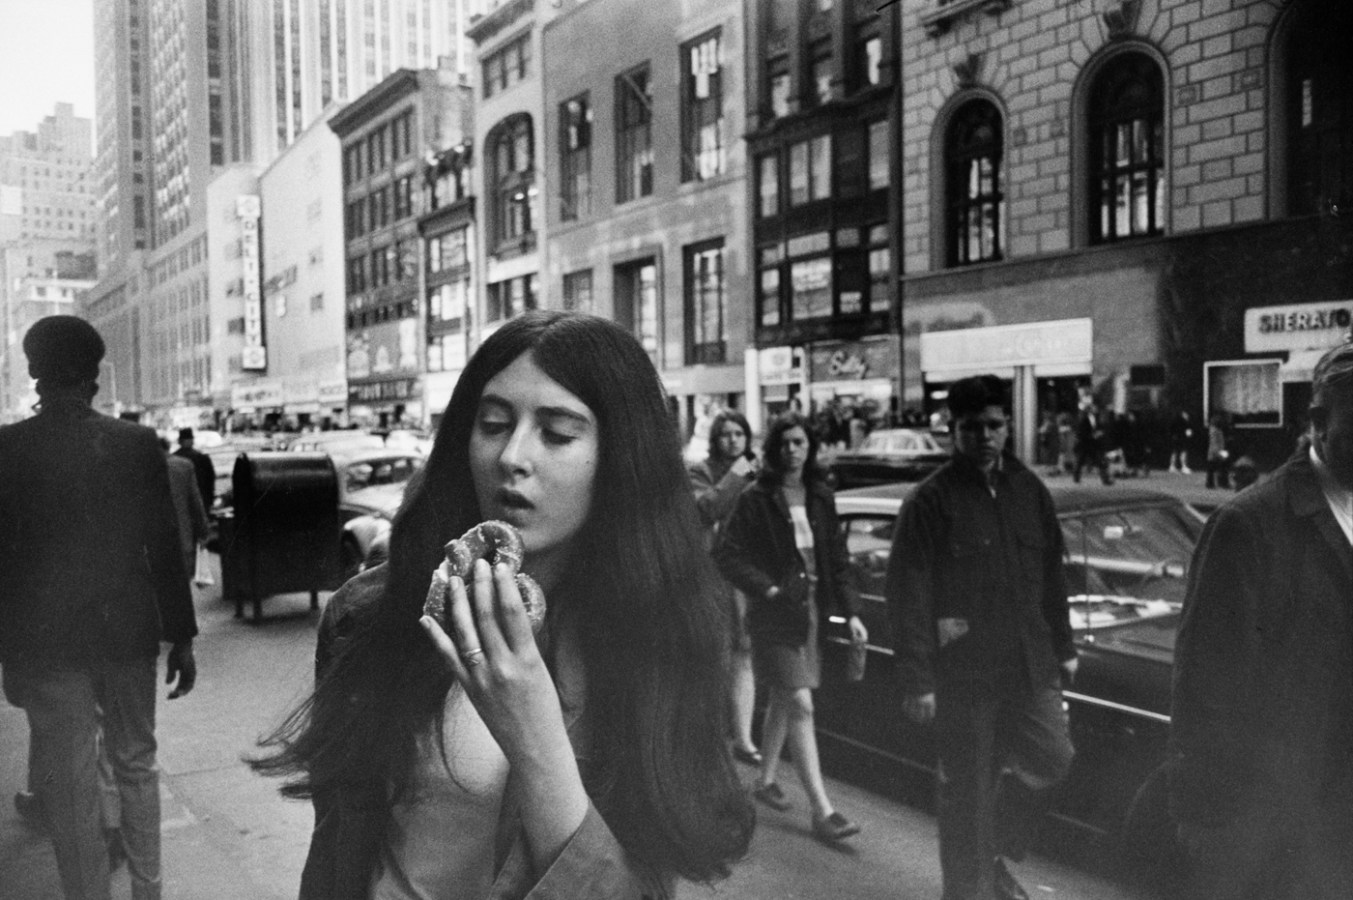 Black-and-white photograph of a woman on a city sidewalk holding a pretzel to her mouth